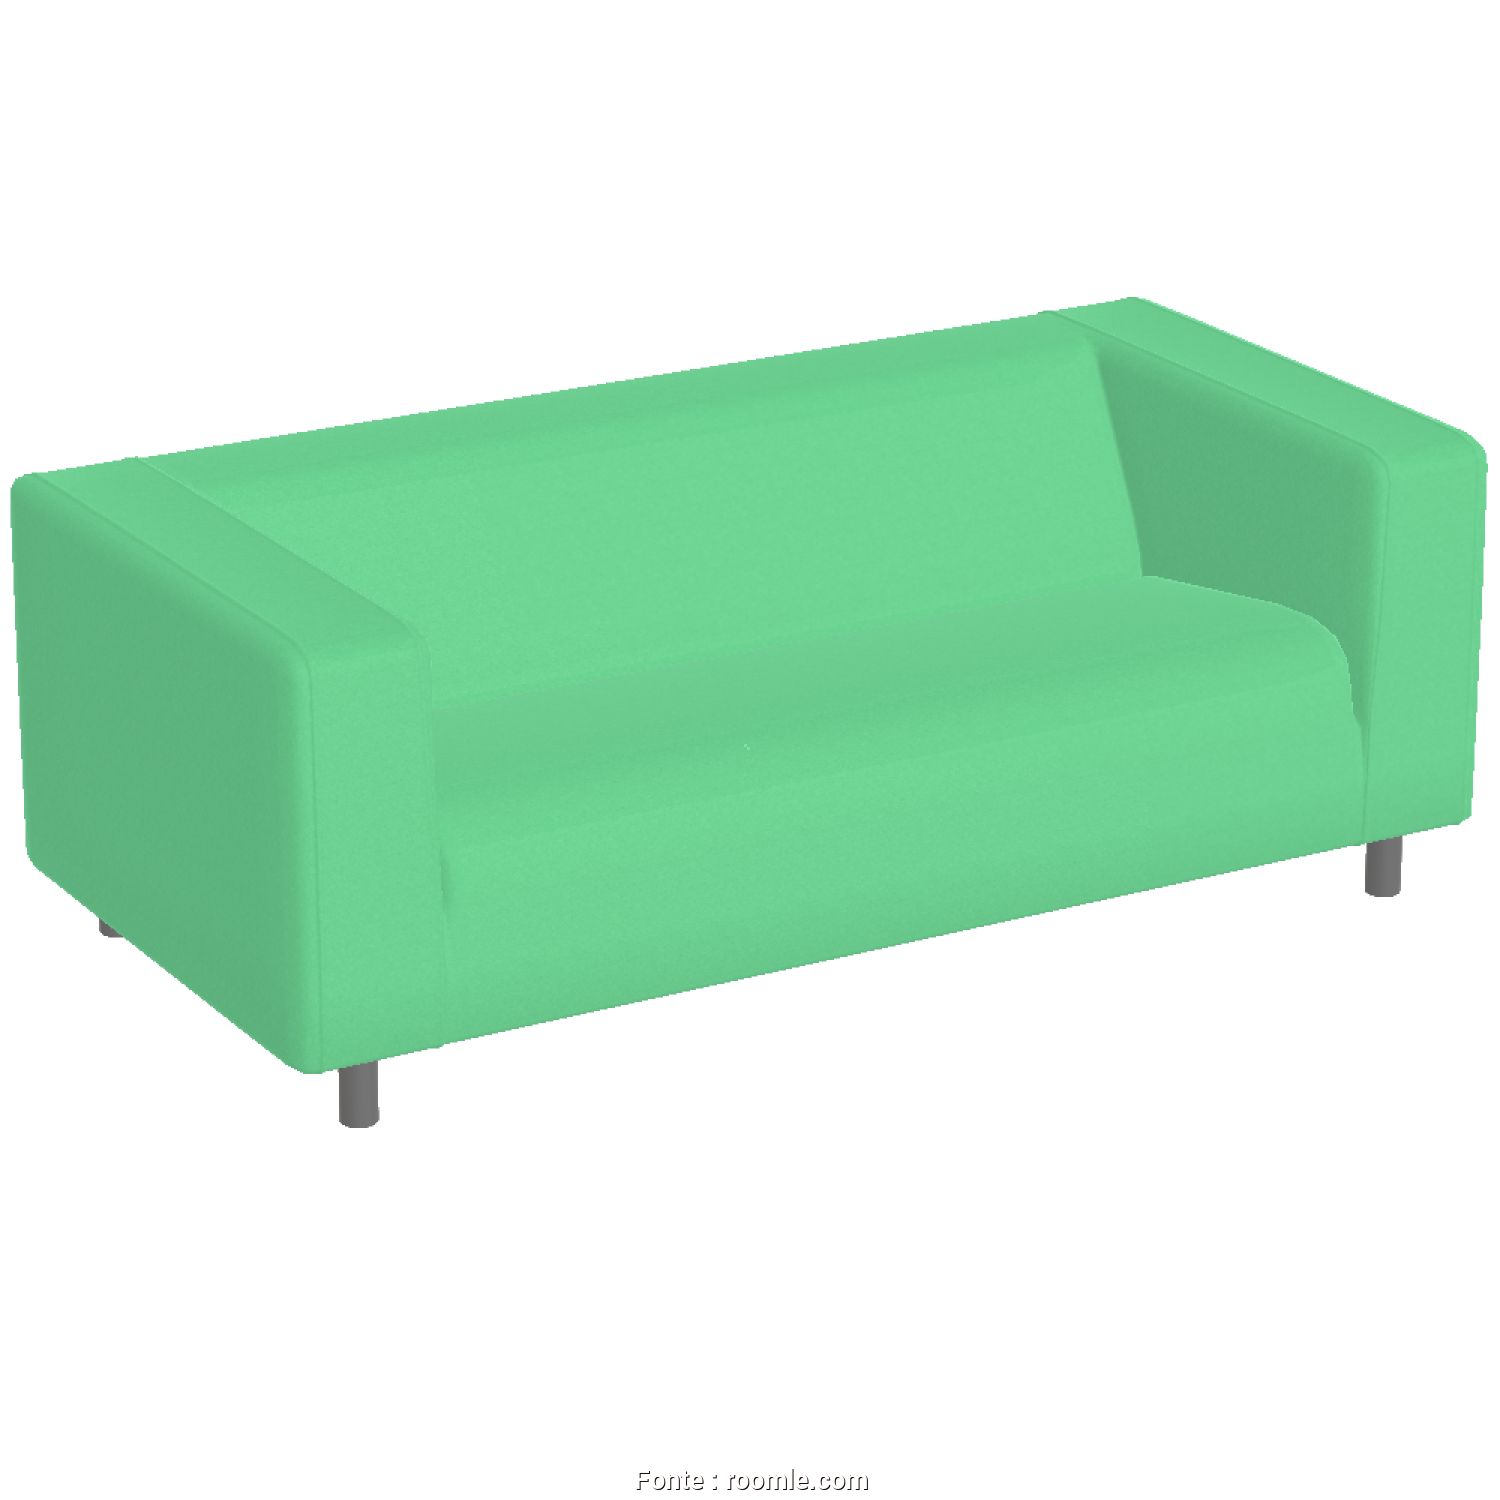 Klippan Ikea.De, Modesto Preview Of Klippan Sofa Green